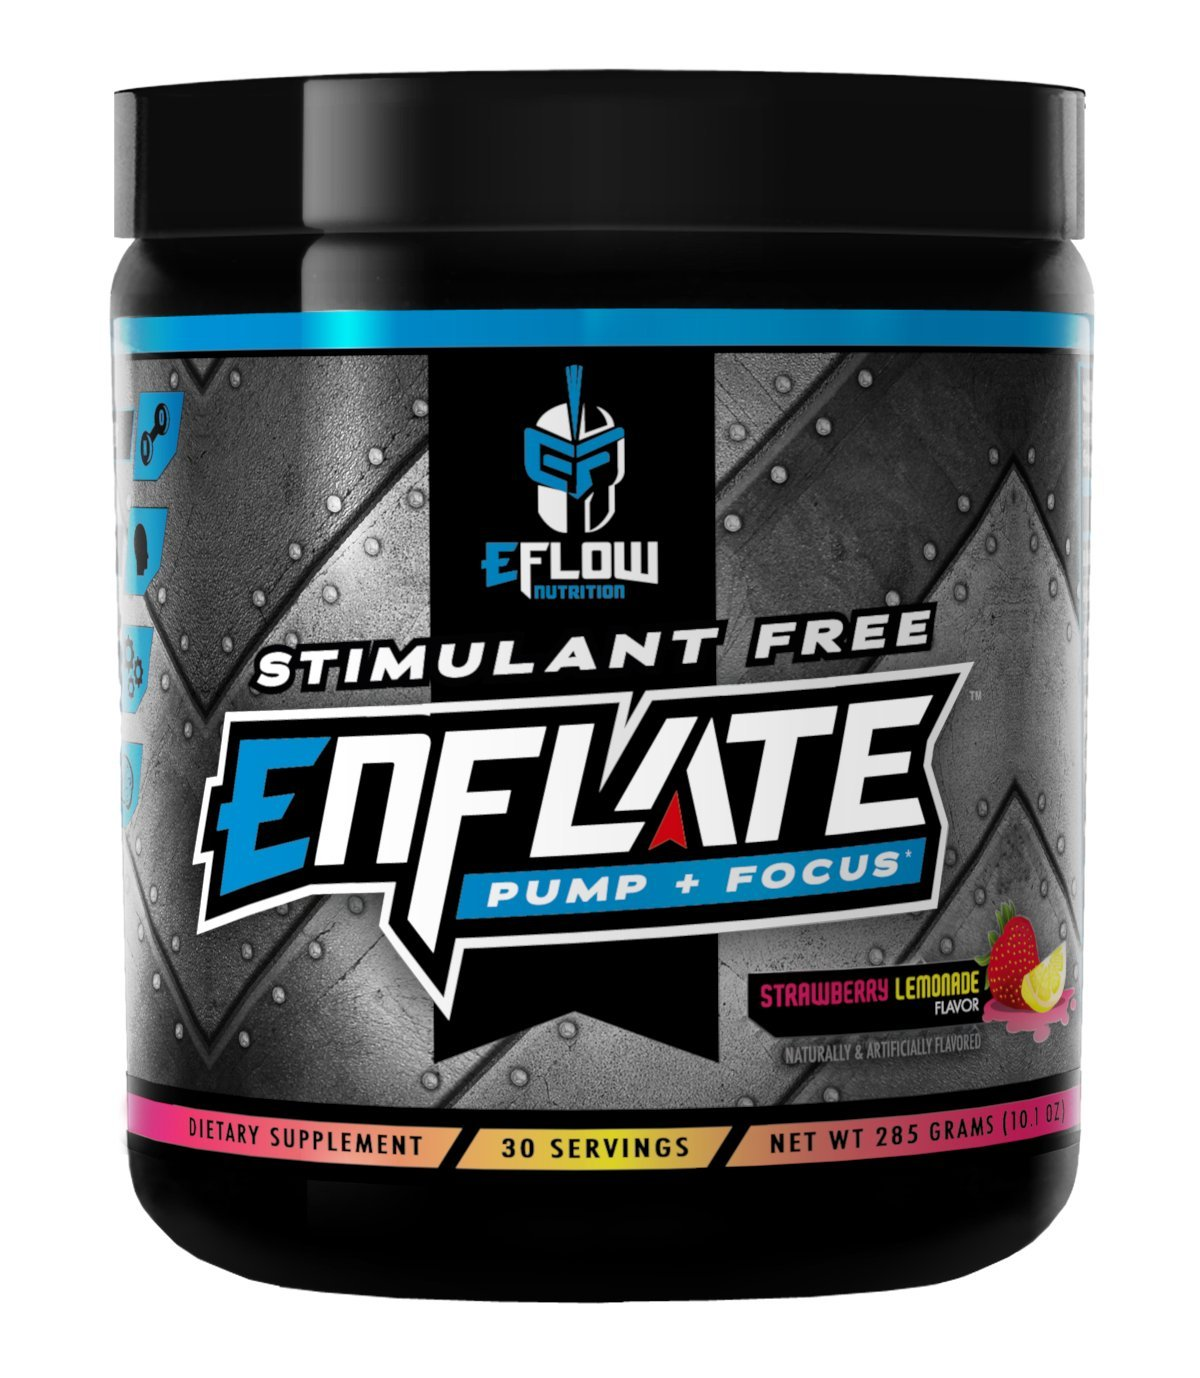 eFlow Nutrition ENFLATE Stimulant Free Pump Focus preworkout Strawberry Lemonade